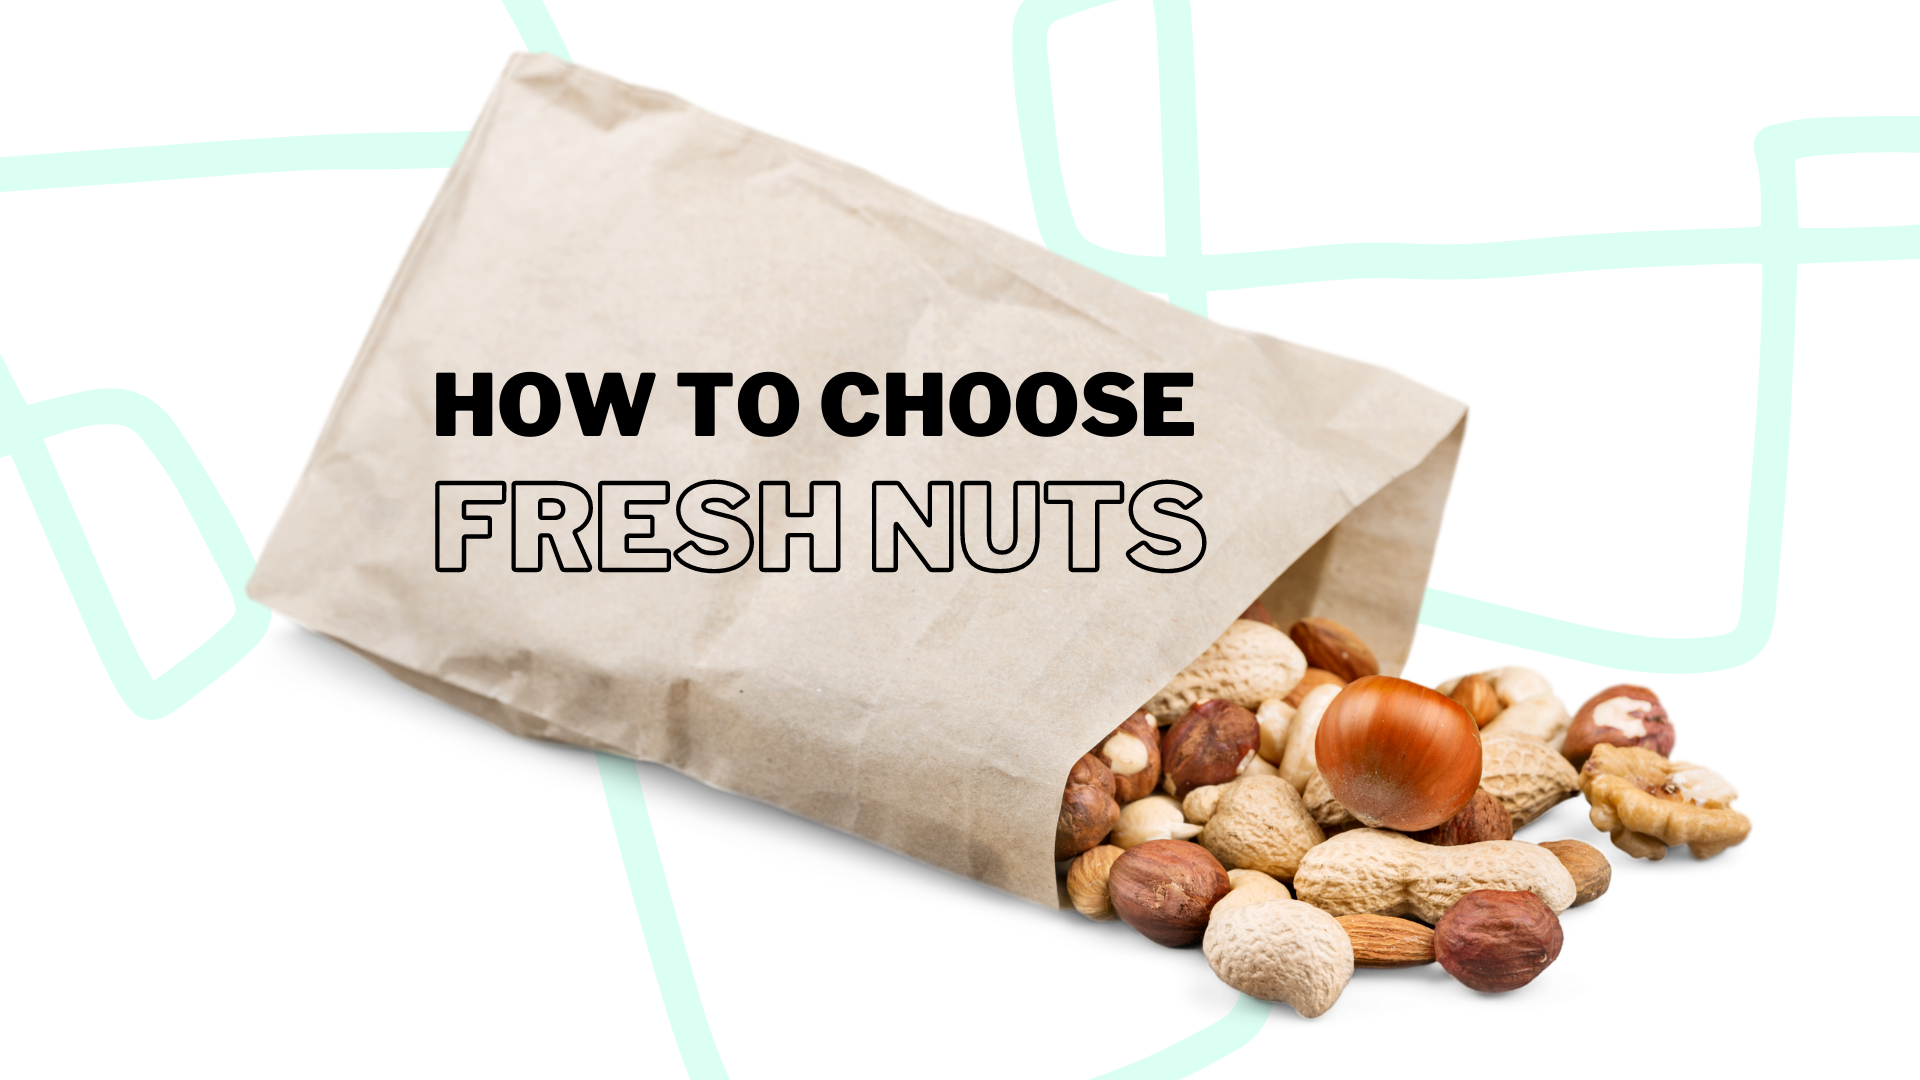 A guide to choosing the freshest nuts